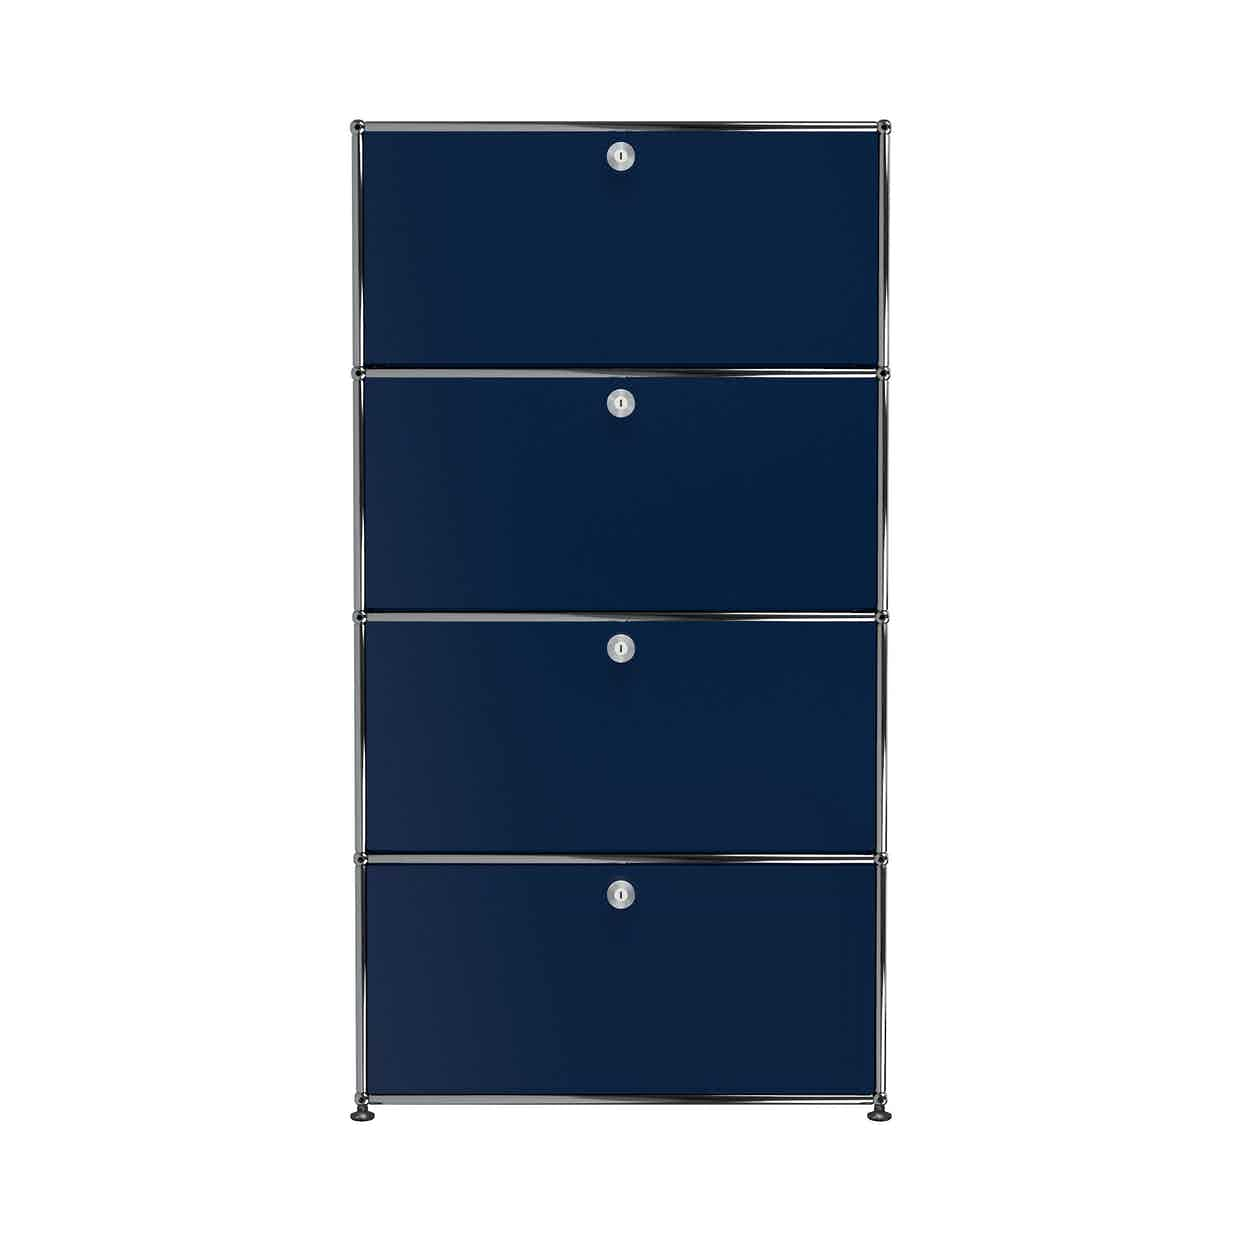 Usm-quick-ship-Haller-Storage-S118A-steel-blue-haute-living